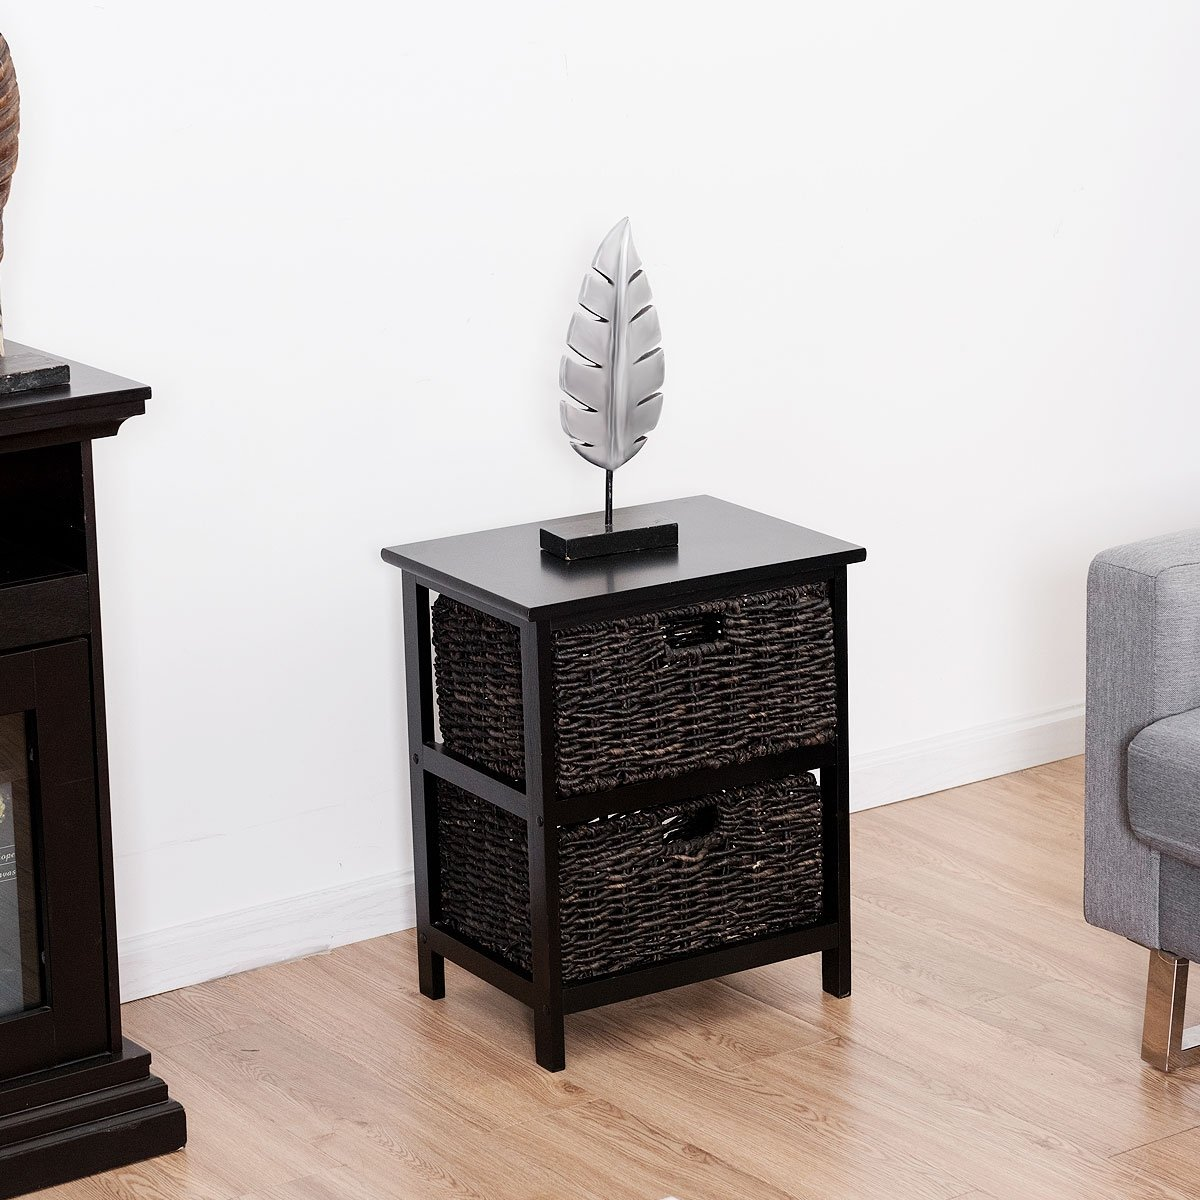 way wood end accent table home furniture living room night stand storage baskets with free shipping today narrow depth console uttermost dice red beach cottage decor rectangle